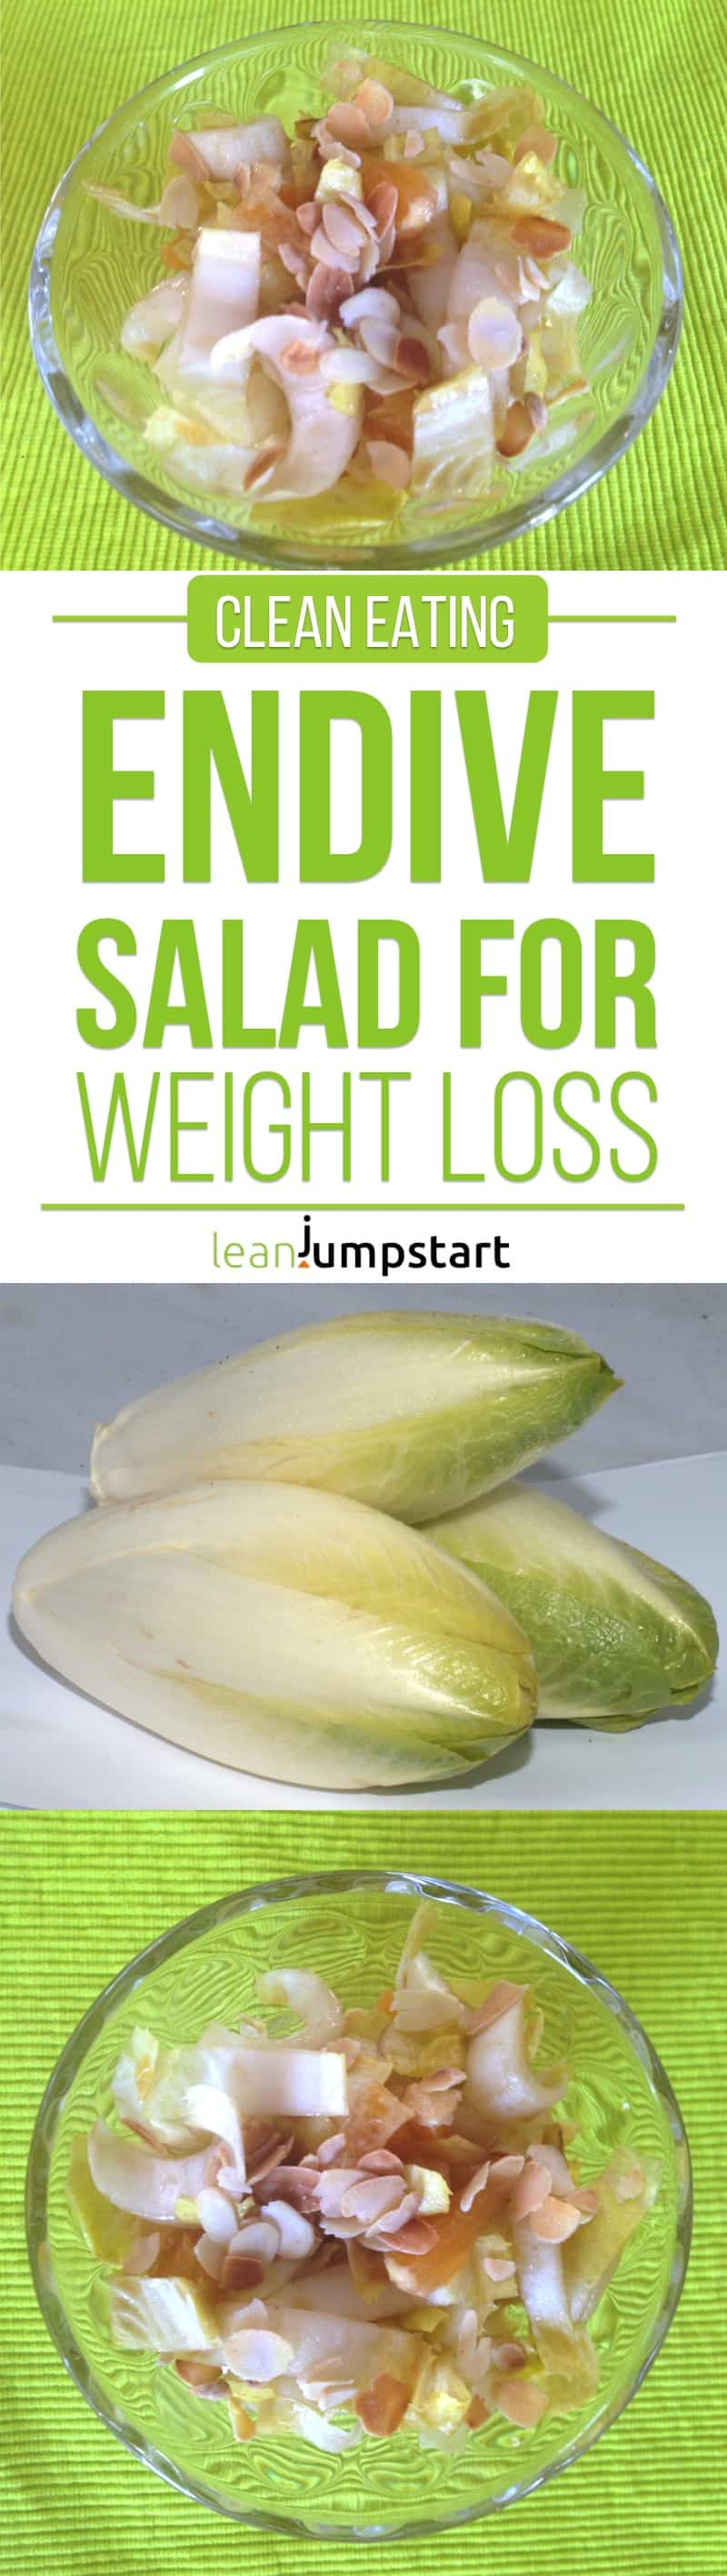 Endive Salad Recipe For Weight Loss Quick And Easy